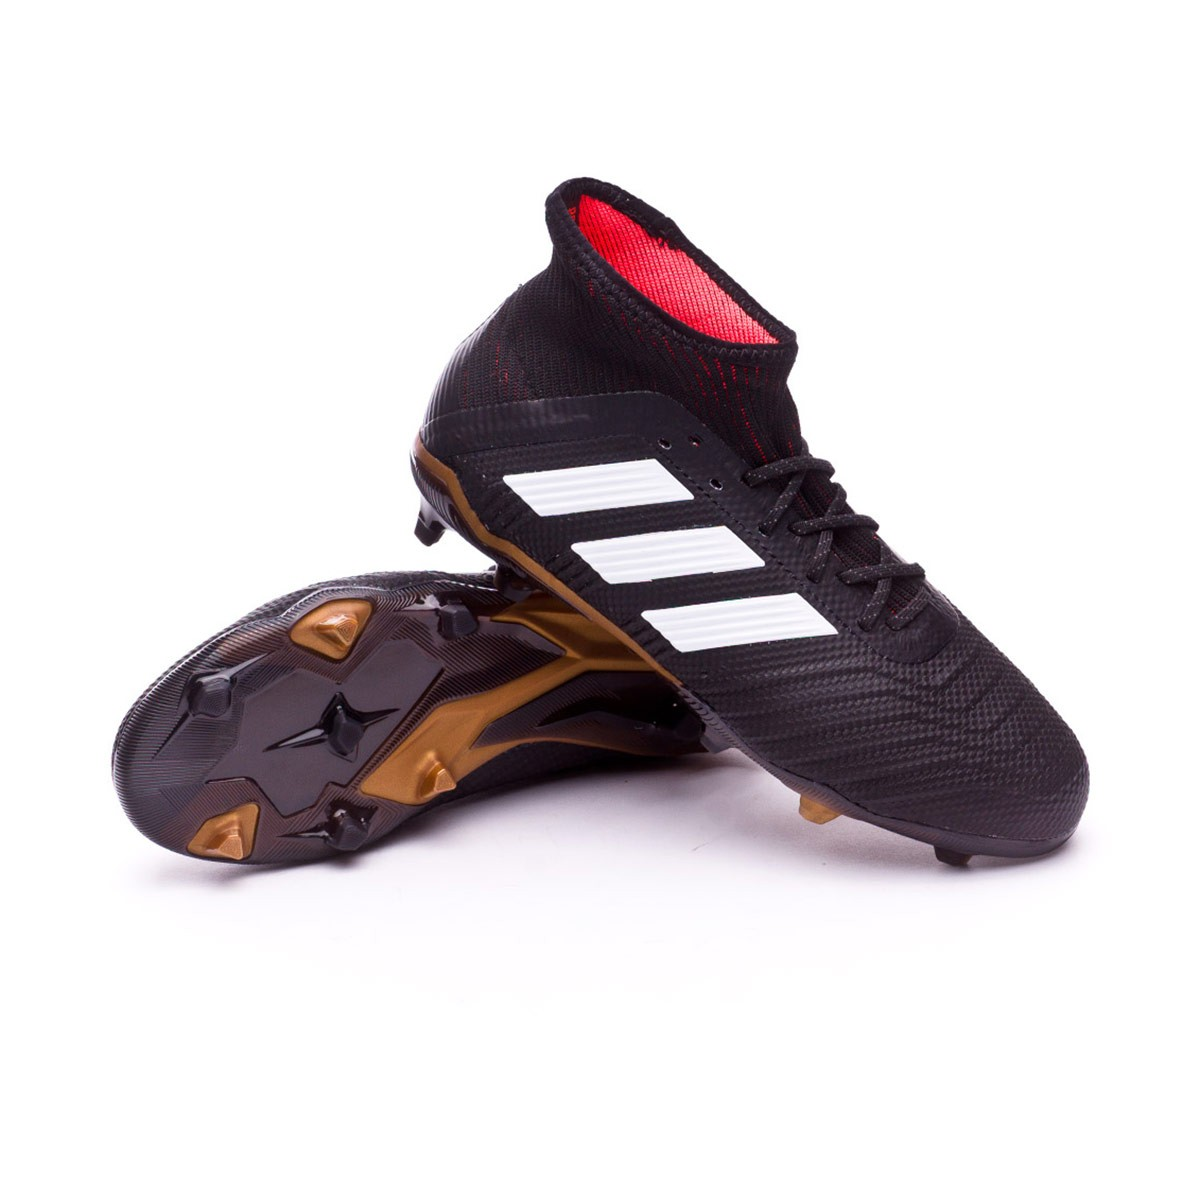 8de09e02d7cf Football Boots adidas Kids Predator 18.1 FG Core black-White-Gold ...